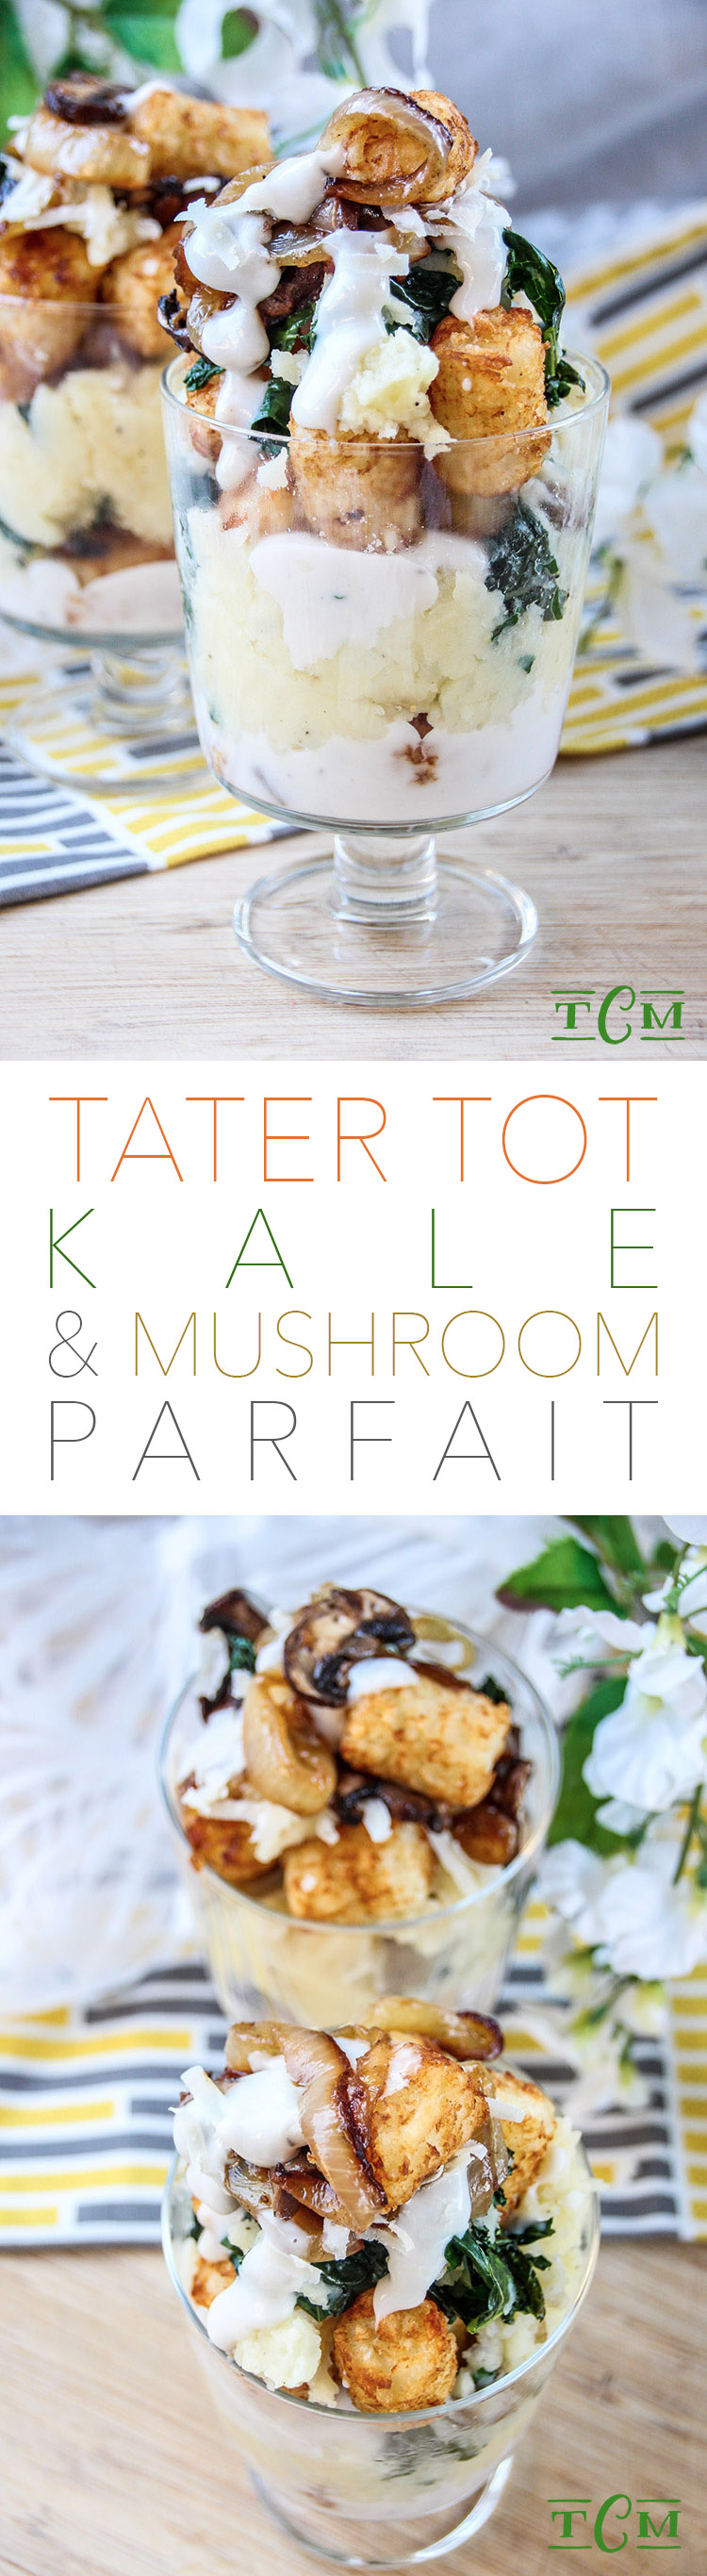 http://thecottagemarket.com/wp-content/uploads/2017/03/Tater-Tot-Potatoes-Kale-Parfait-tower-1.jpg